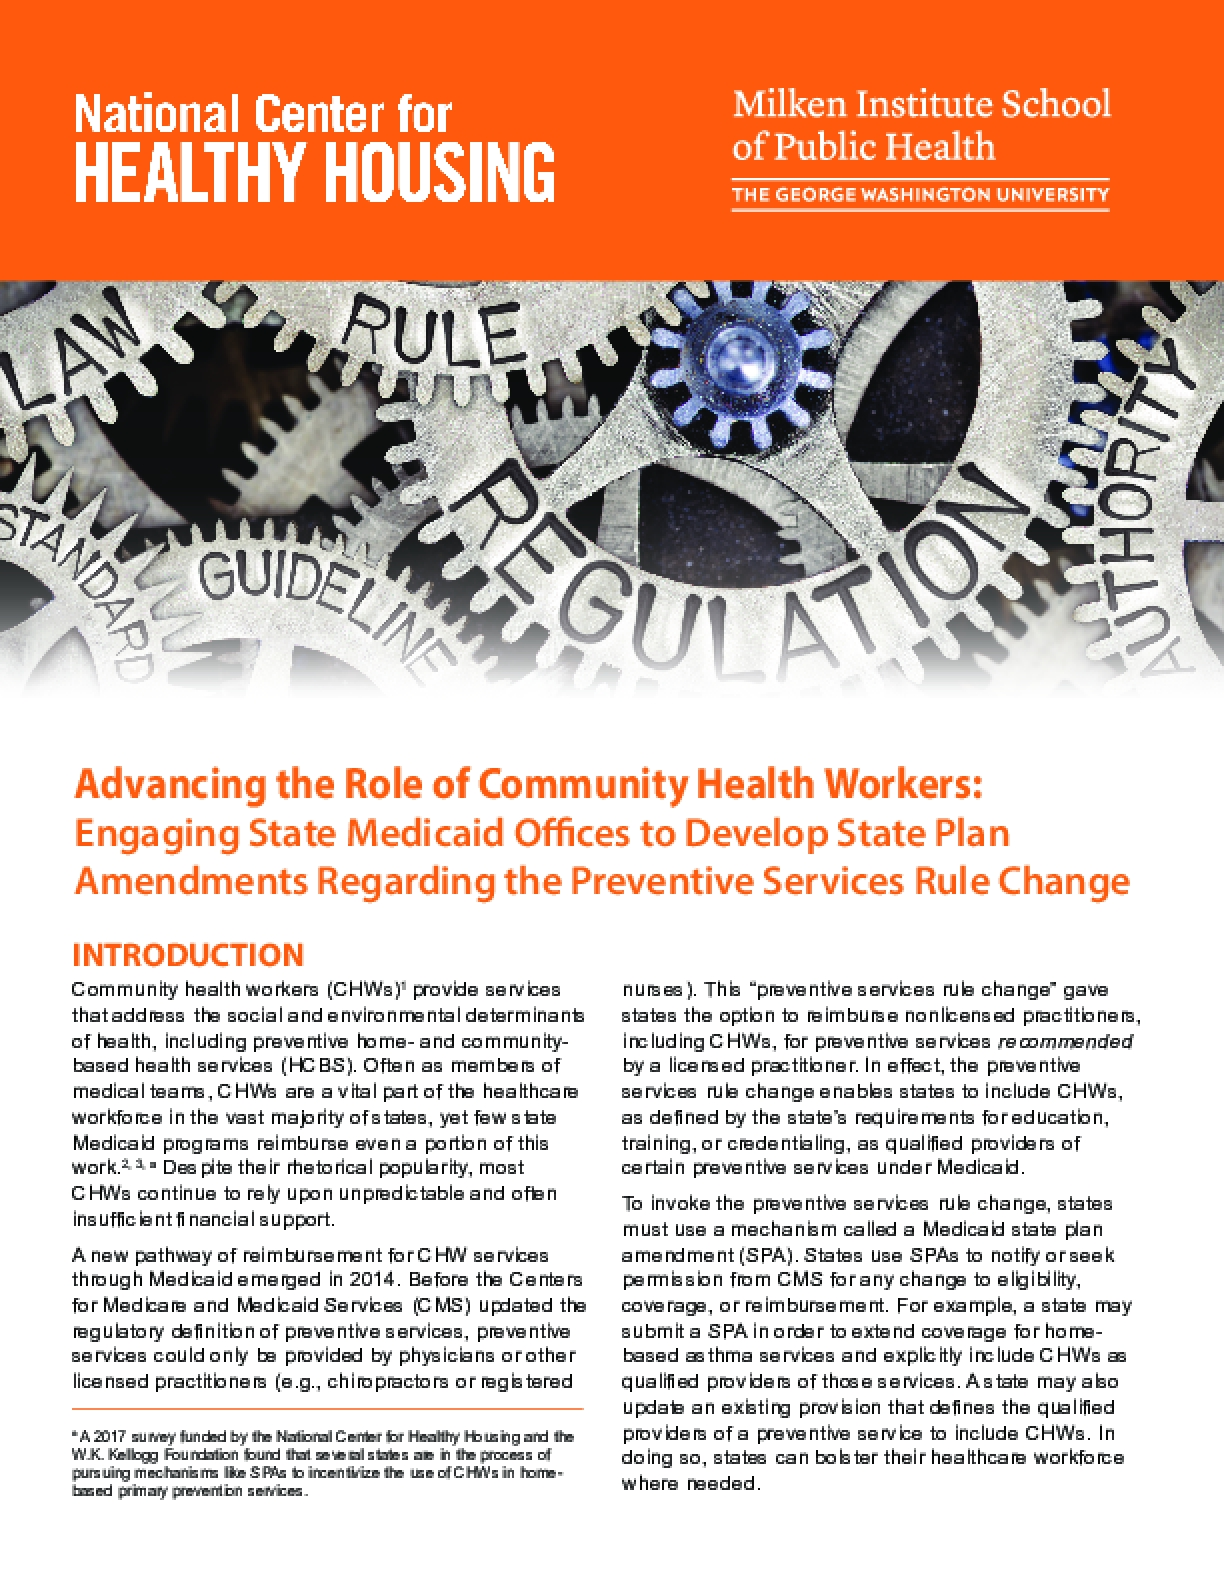 Advancing the Role of Community Health Workers: Engaging State Medicaid Offices to Develop State Plan Amendments Regarding the Preventive Services Rule Change